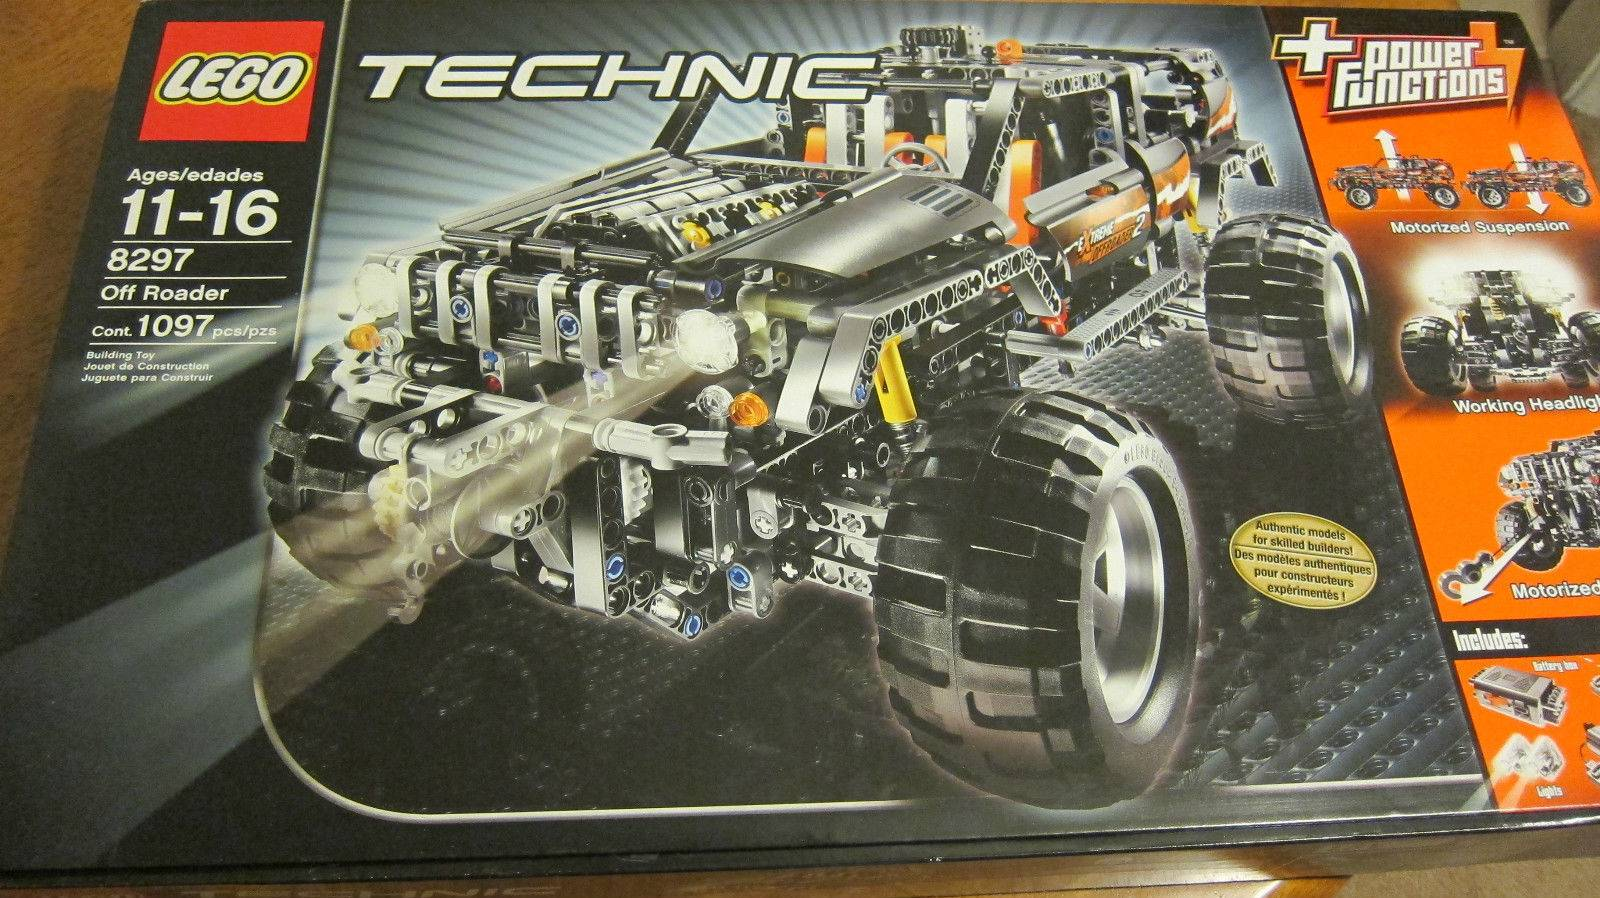 Lego 8297 Technic Power Functions Off Roader Set